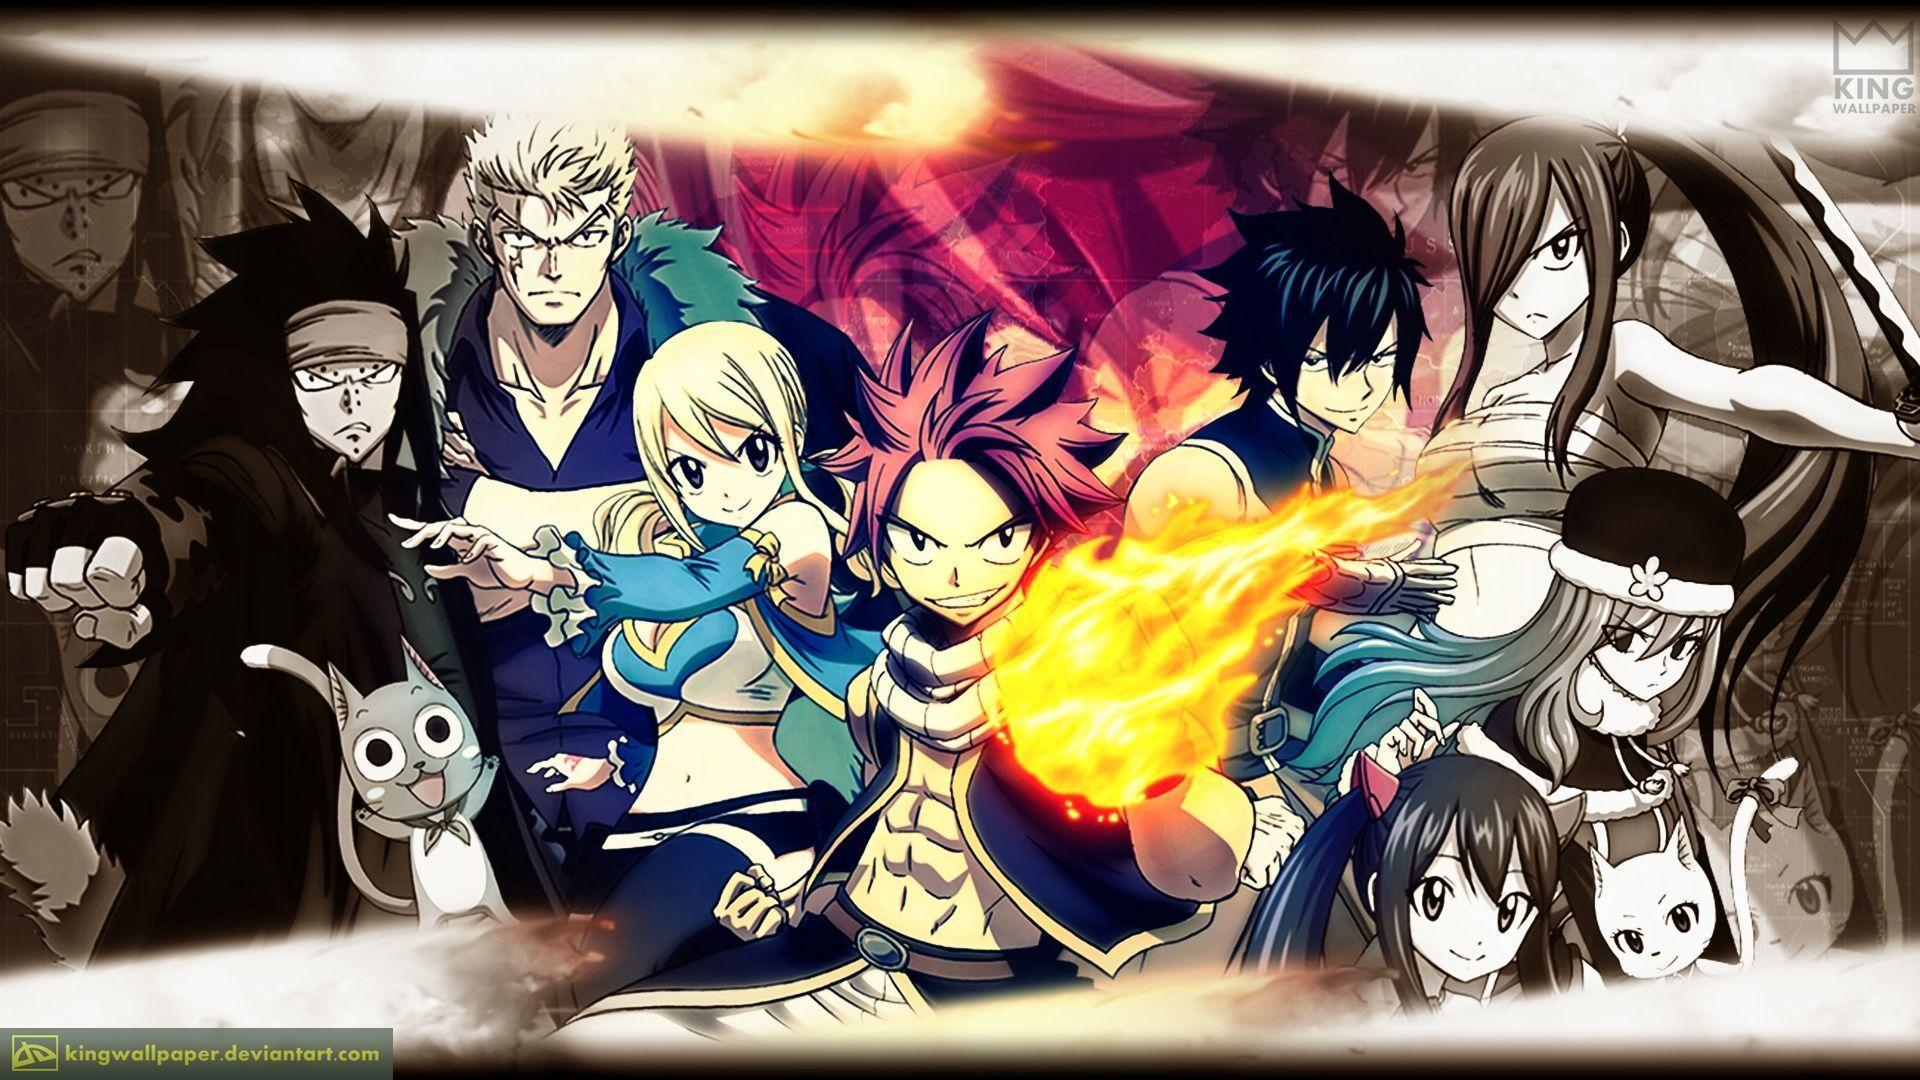 Fairytail 2016 Wallpapers 1920x1080